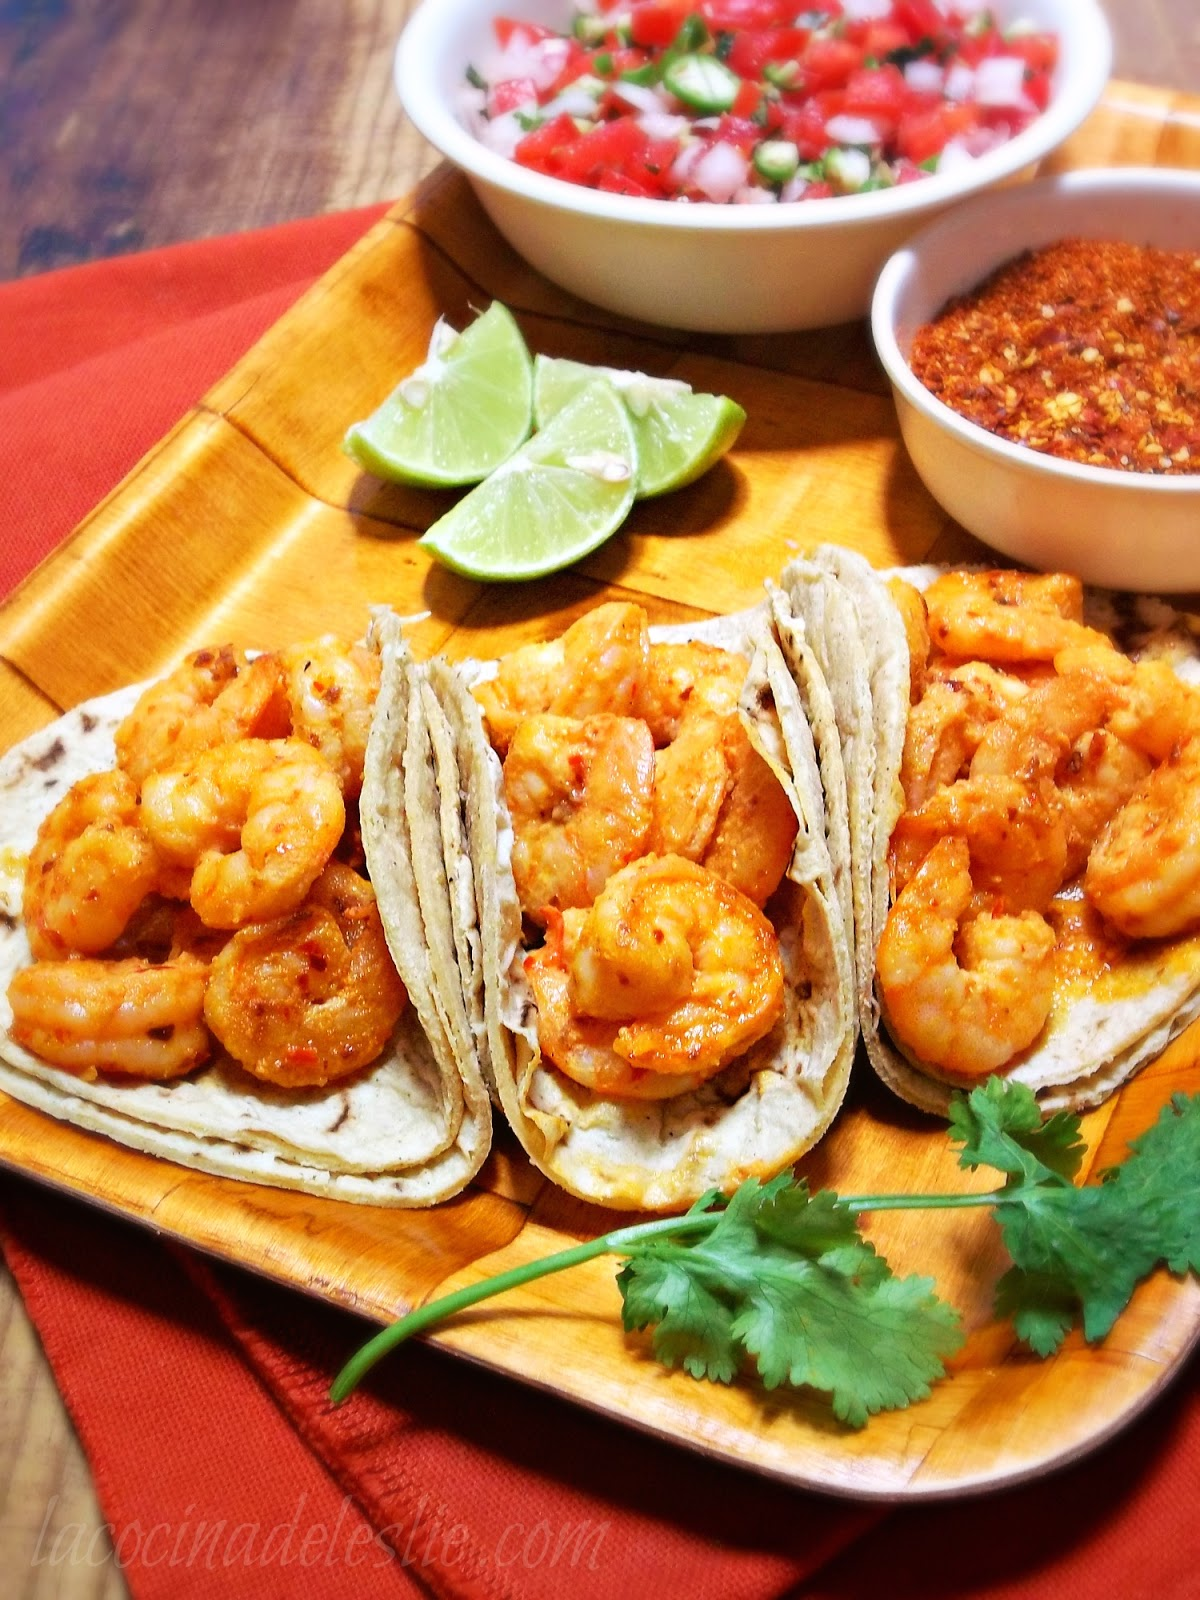 tequila lime shrimp tacos recipe yummly tequila lime chicken tacos